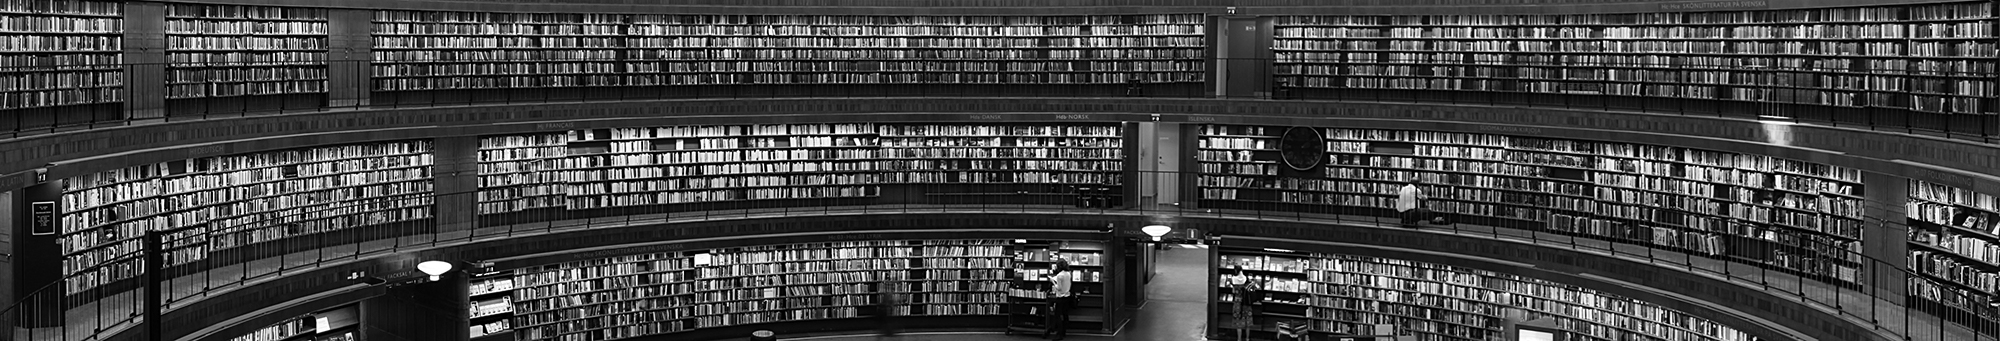 Banner - shelves full of books on the walls of a round room in a library